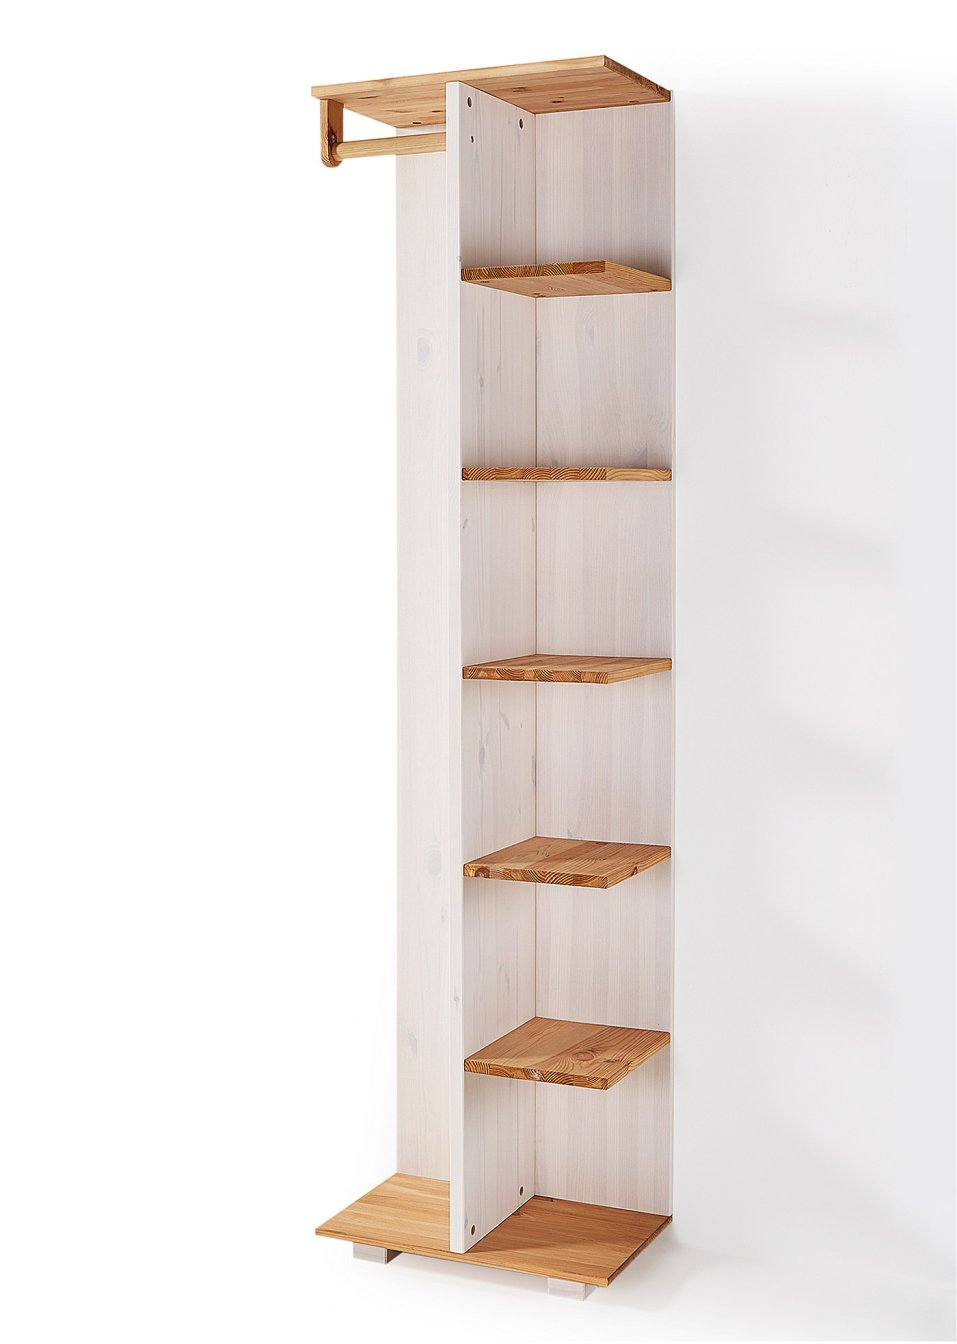 Meuble U00e9tagu00e8re Avec Tringle Frieda Bois Naturel/blanc - Maison - Bpc Living - Bonprix.fr